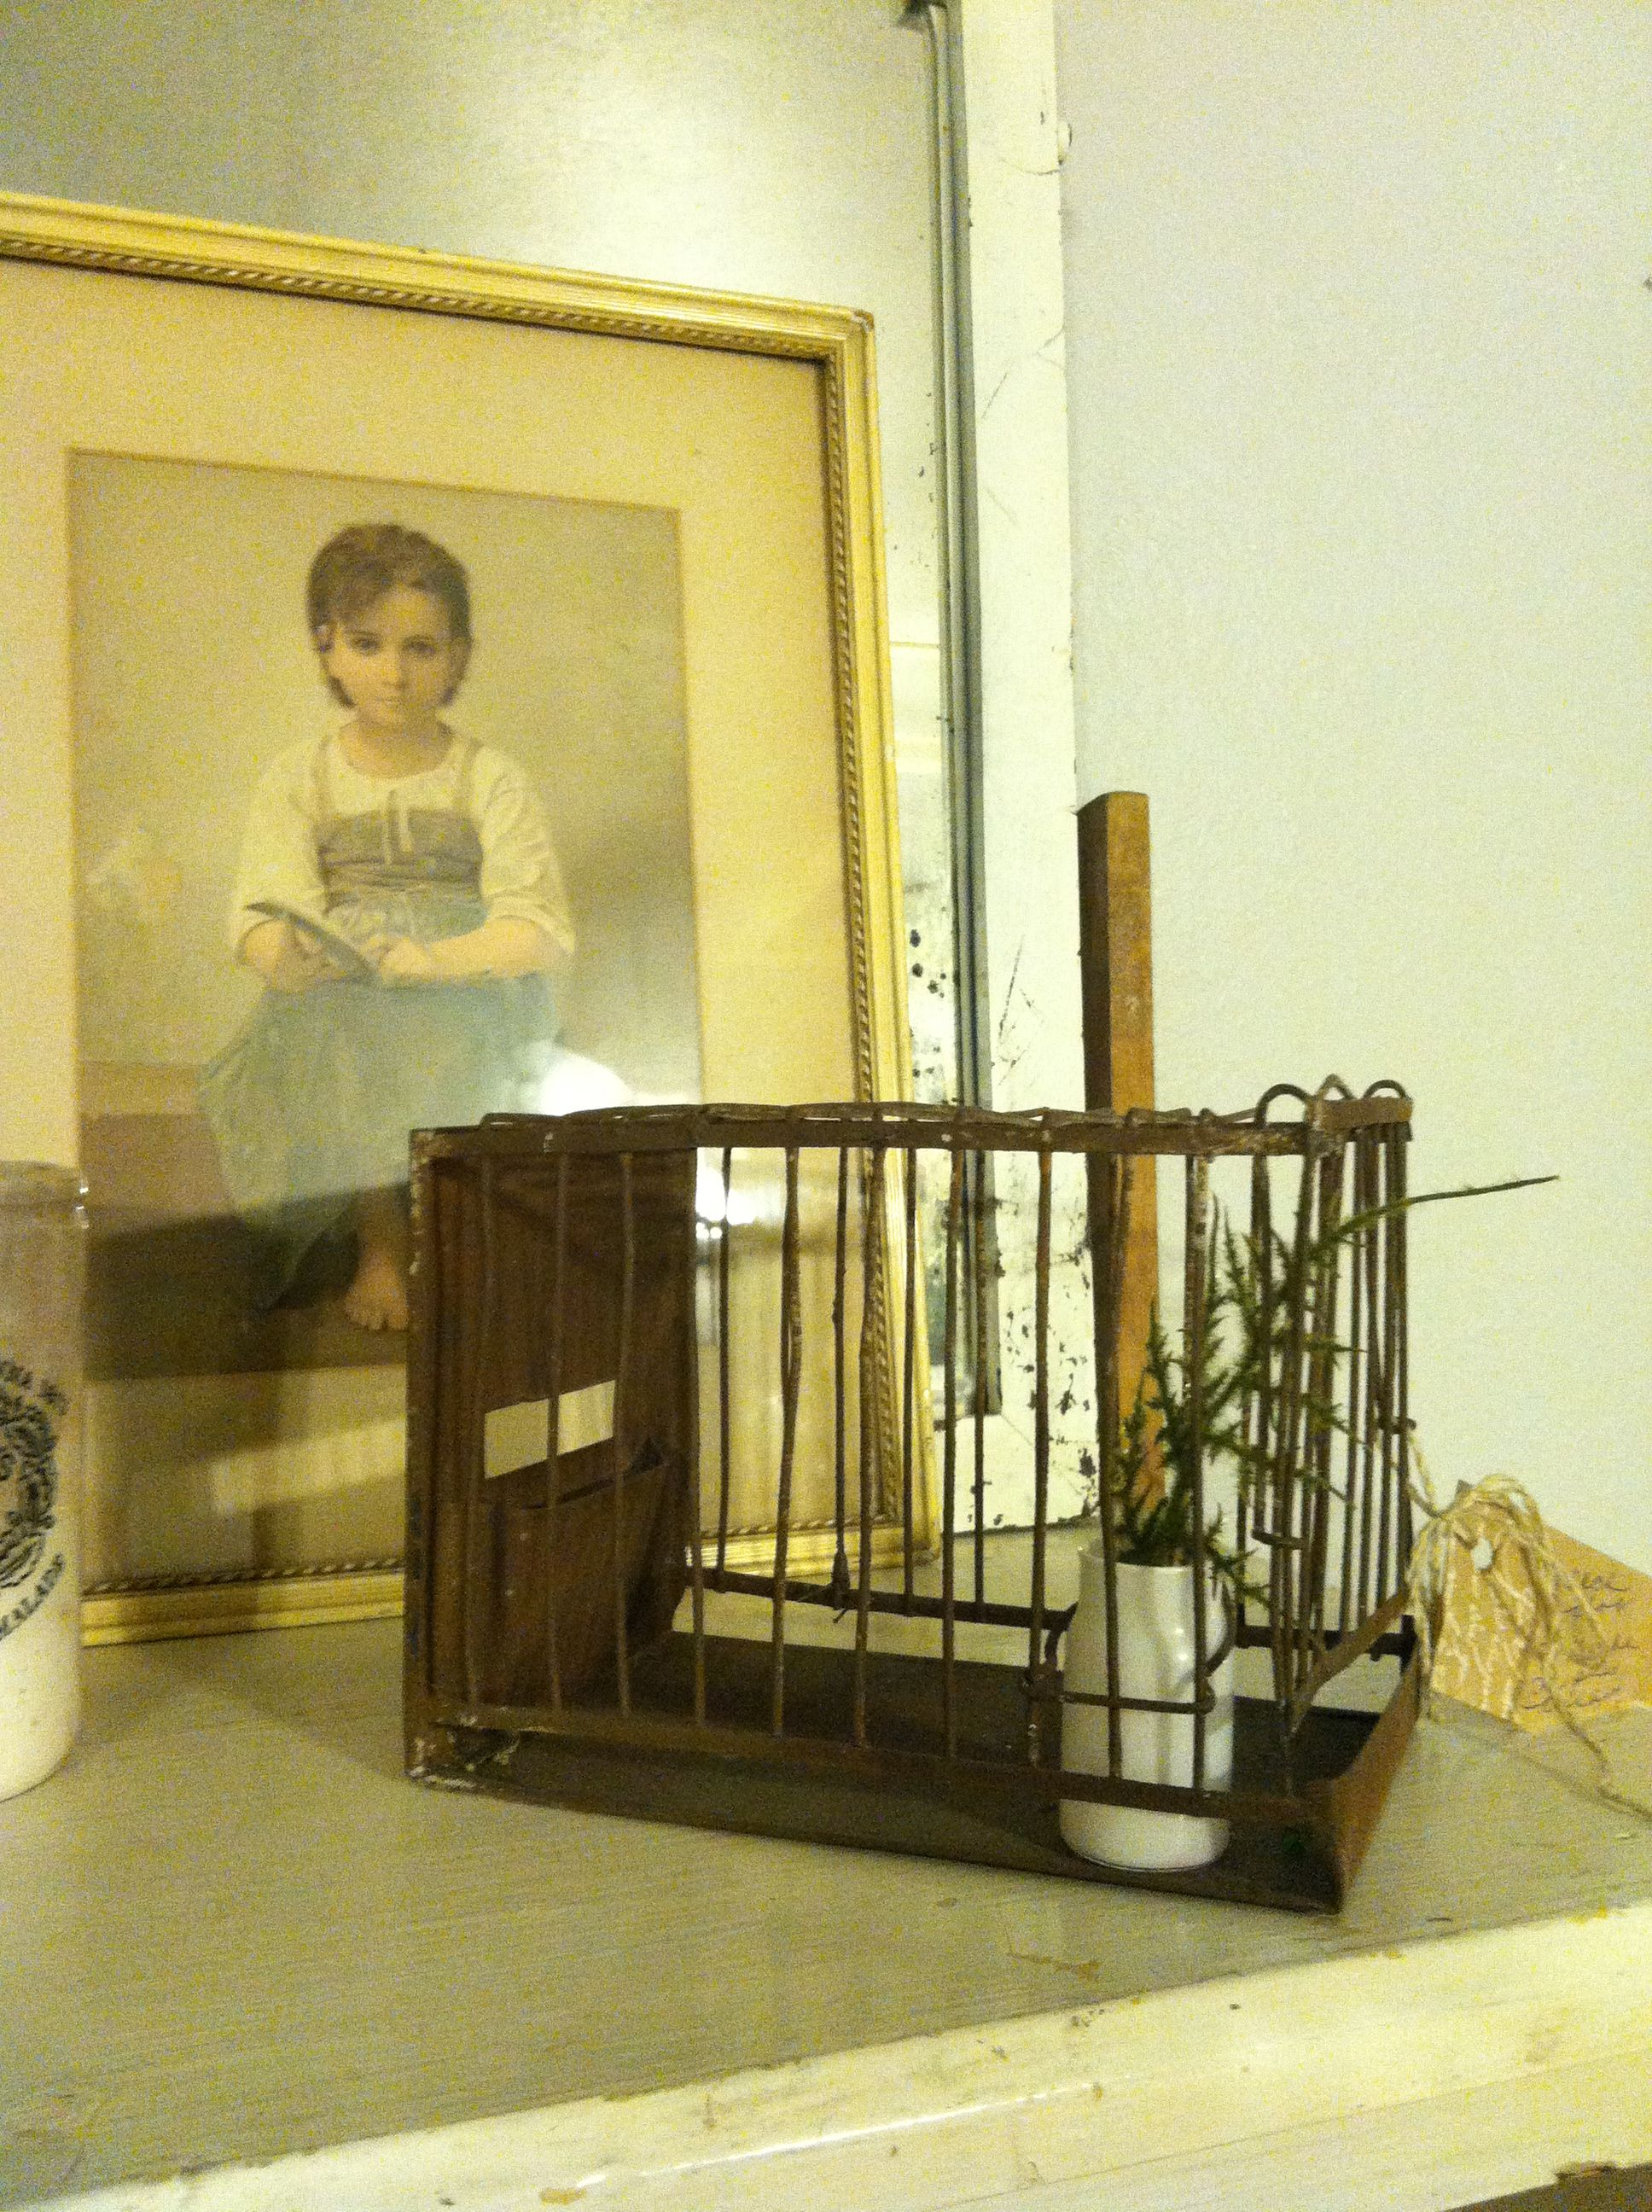 Tiny French bird cage from flea market there. A French Apartment...